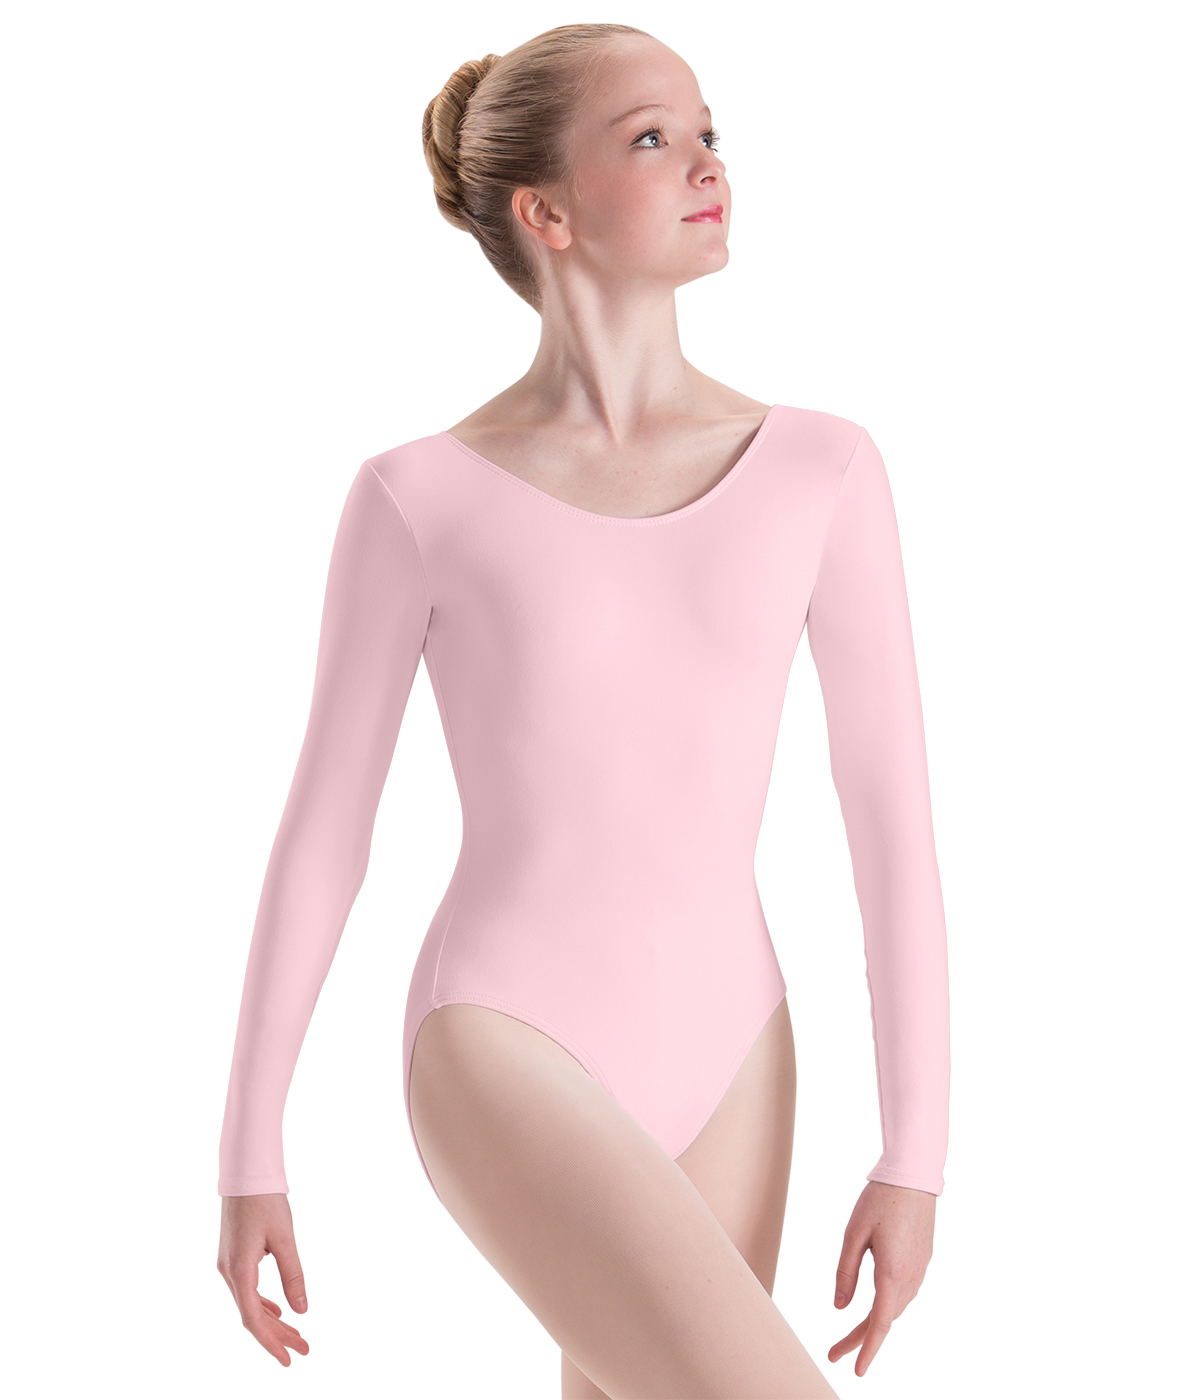 Perfect for gymnastics, dance class, recitals, ballet, Halloween costumes, and flower girl dresses. Adorable styles include our ruffle flutter short sleeve or long sleeve leotard, traditional short sleeve or long sleeve leotard, camisole leotard, or tank leotard. 23 colors including white, ivory, nude, black.